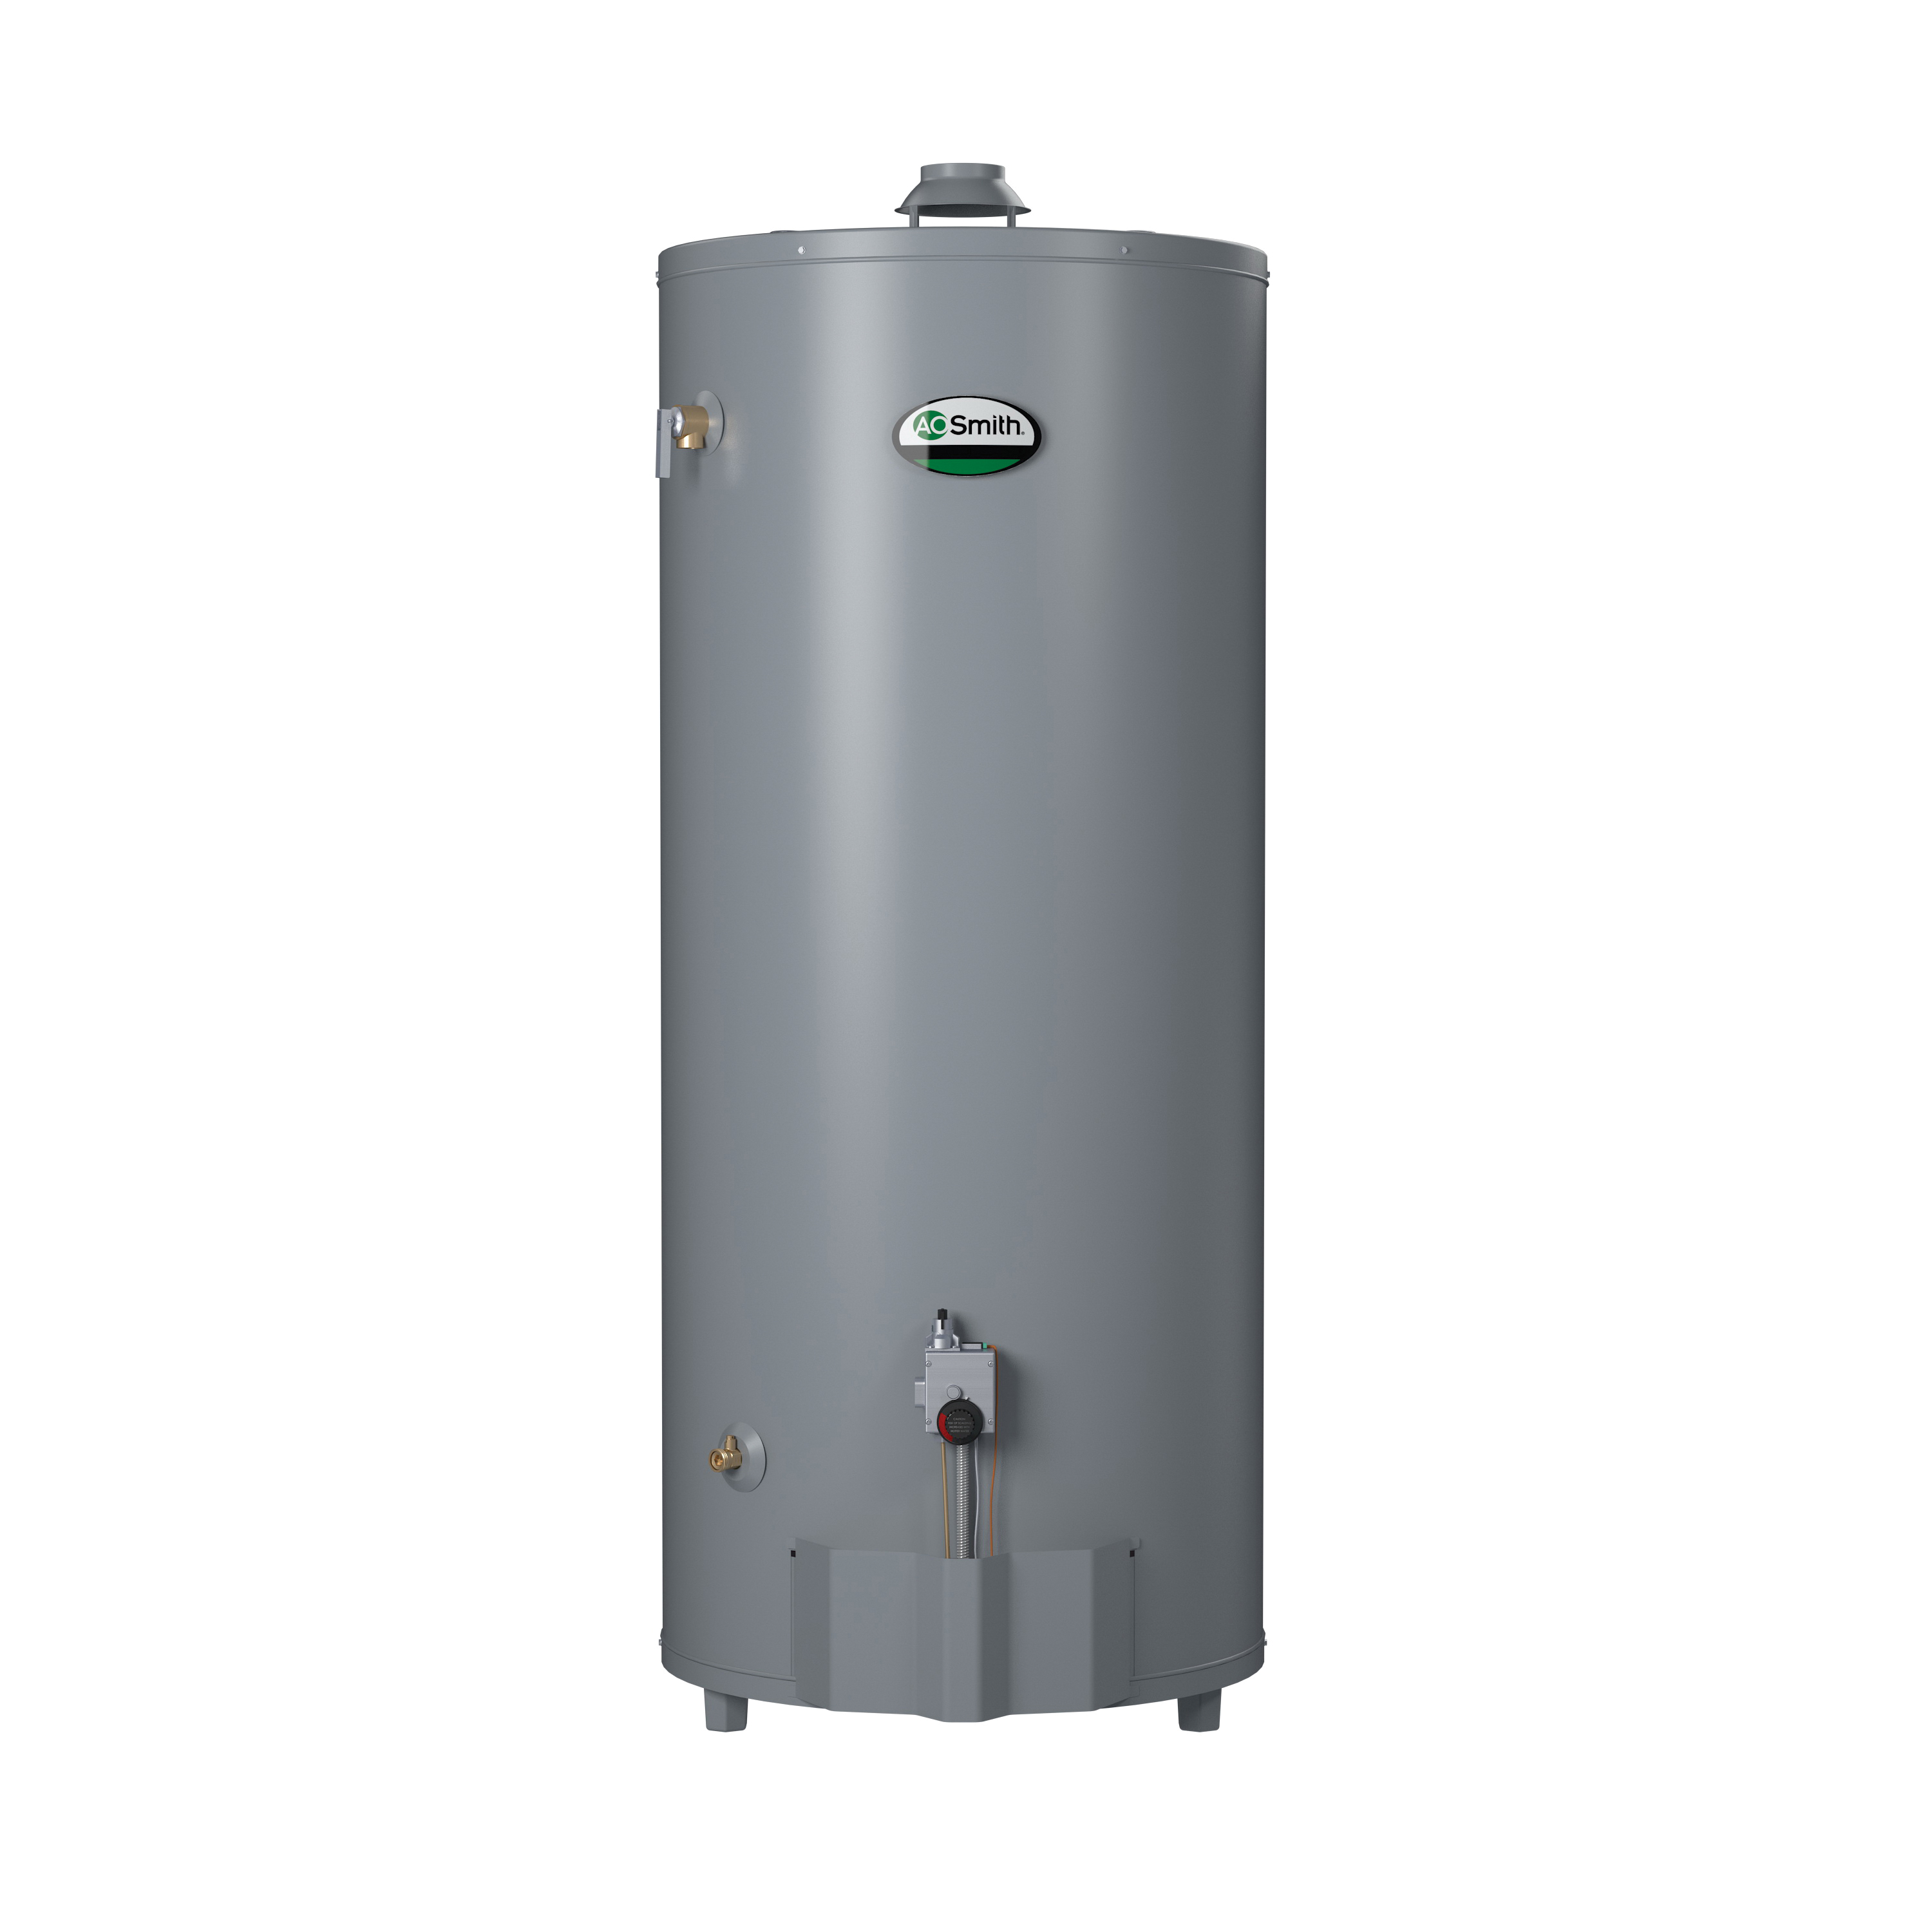 AO Smith® ProLine® 100113810 GCN-75 High Recovery Gas Water Heater, 75100 Btu/hr Heating, 74 gal Tank, Natural Gas Fuel, Atmospheric Vent, Short